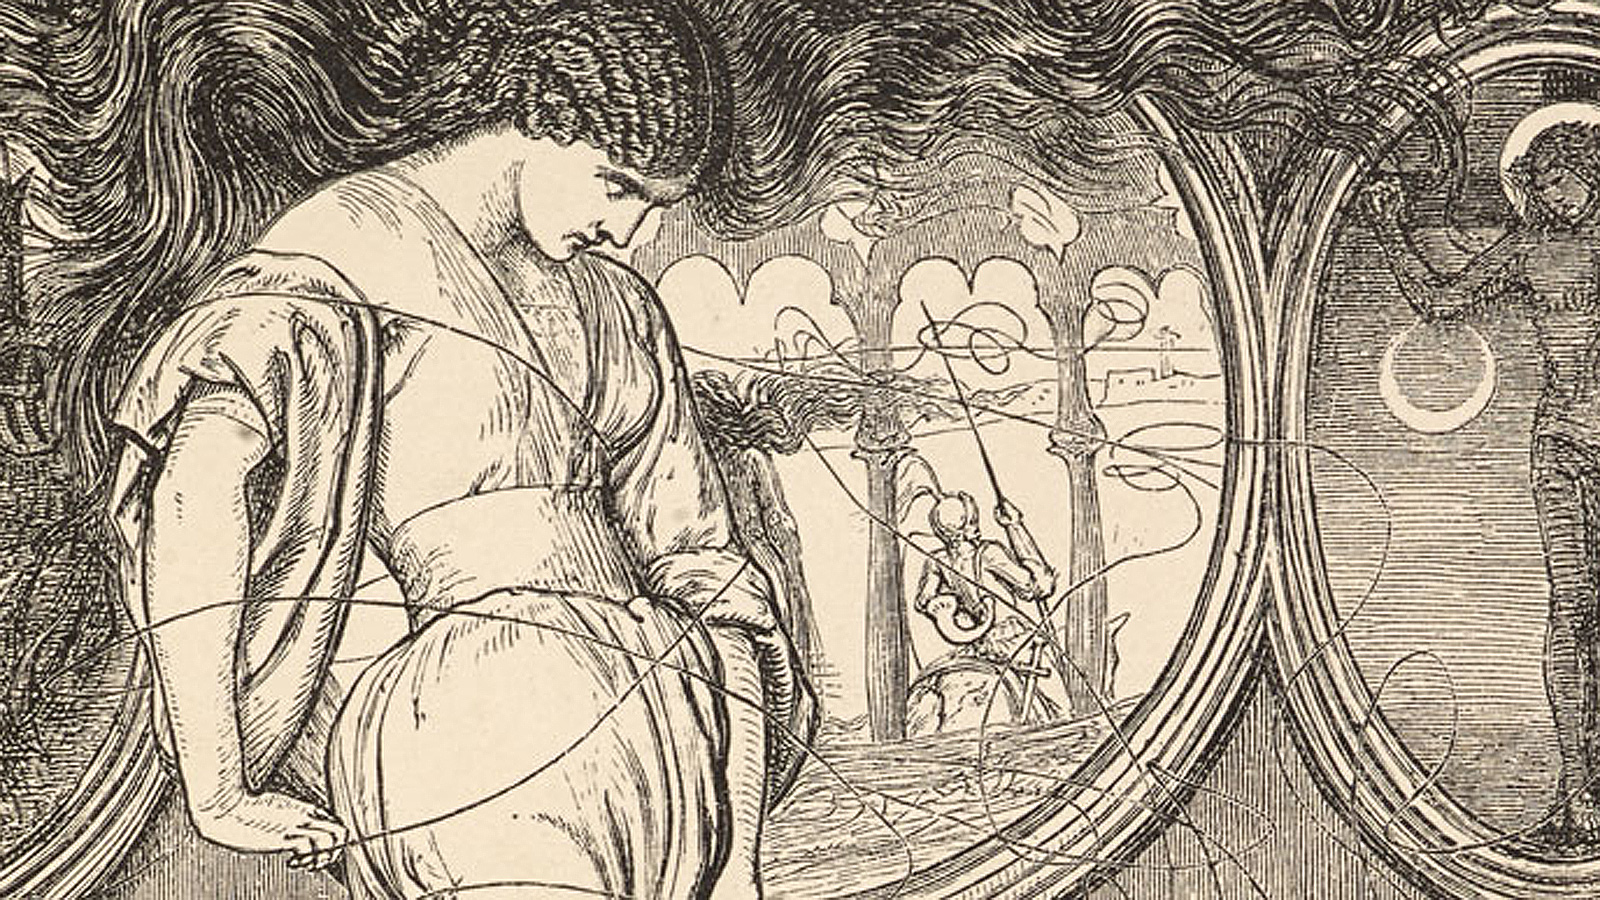 An introduction to 'The Lady of Shalott'